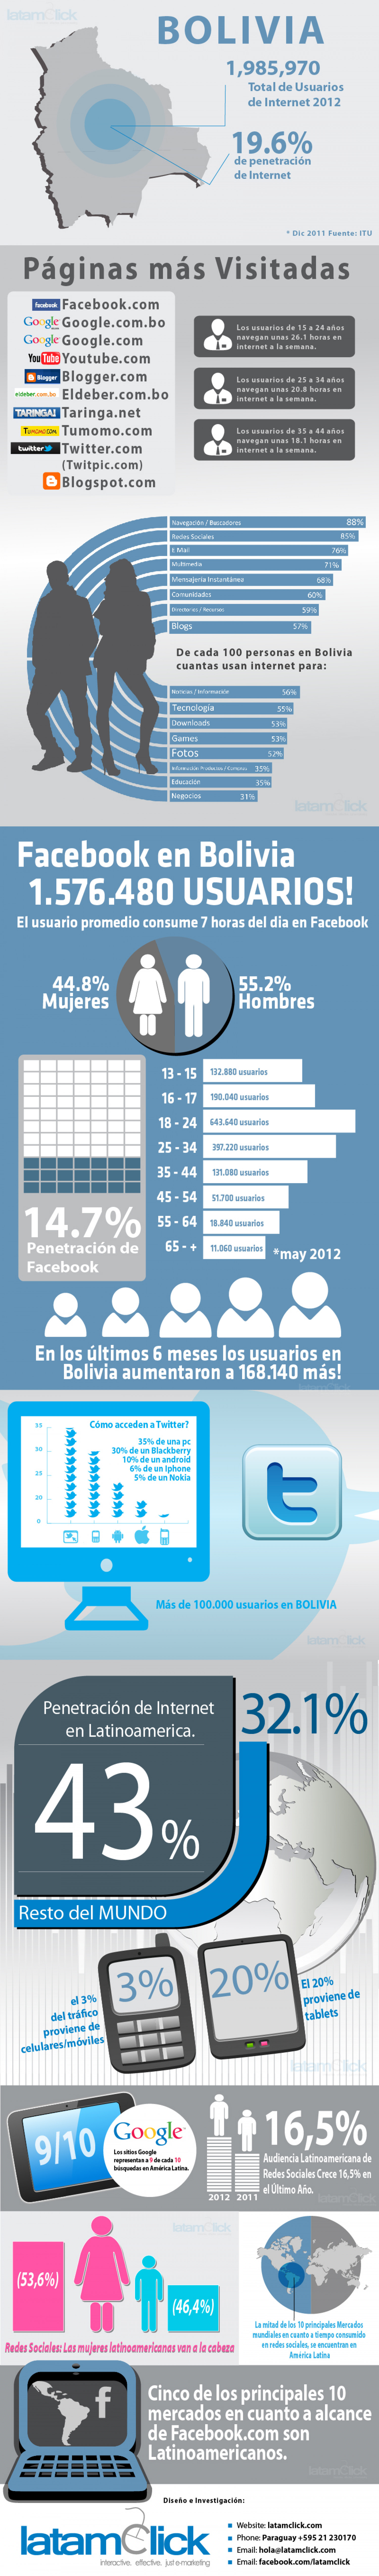 Bolivia Digital Infographic